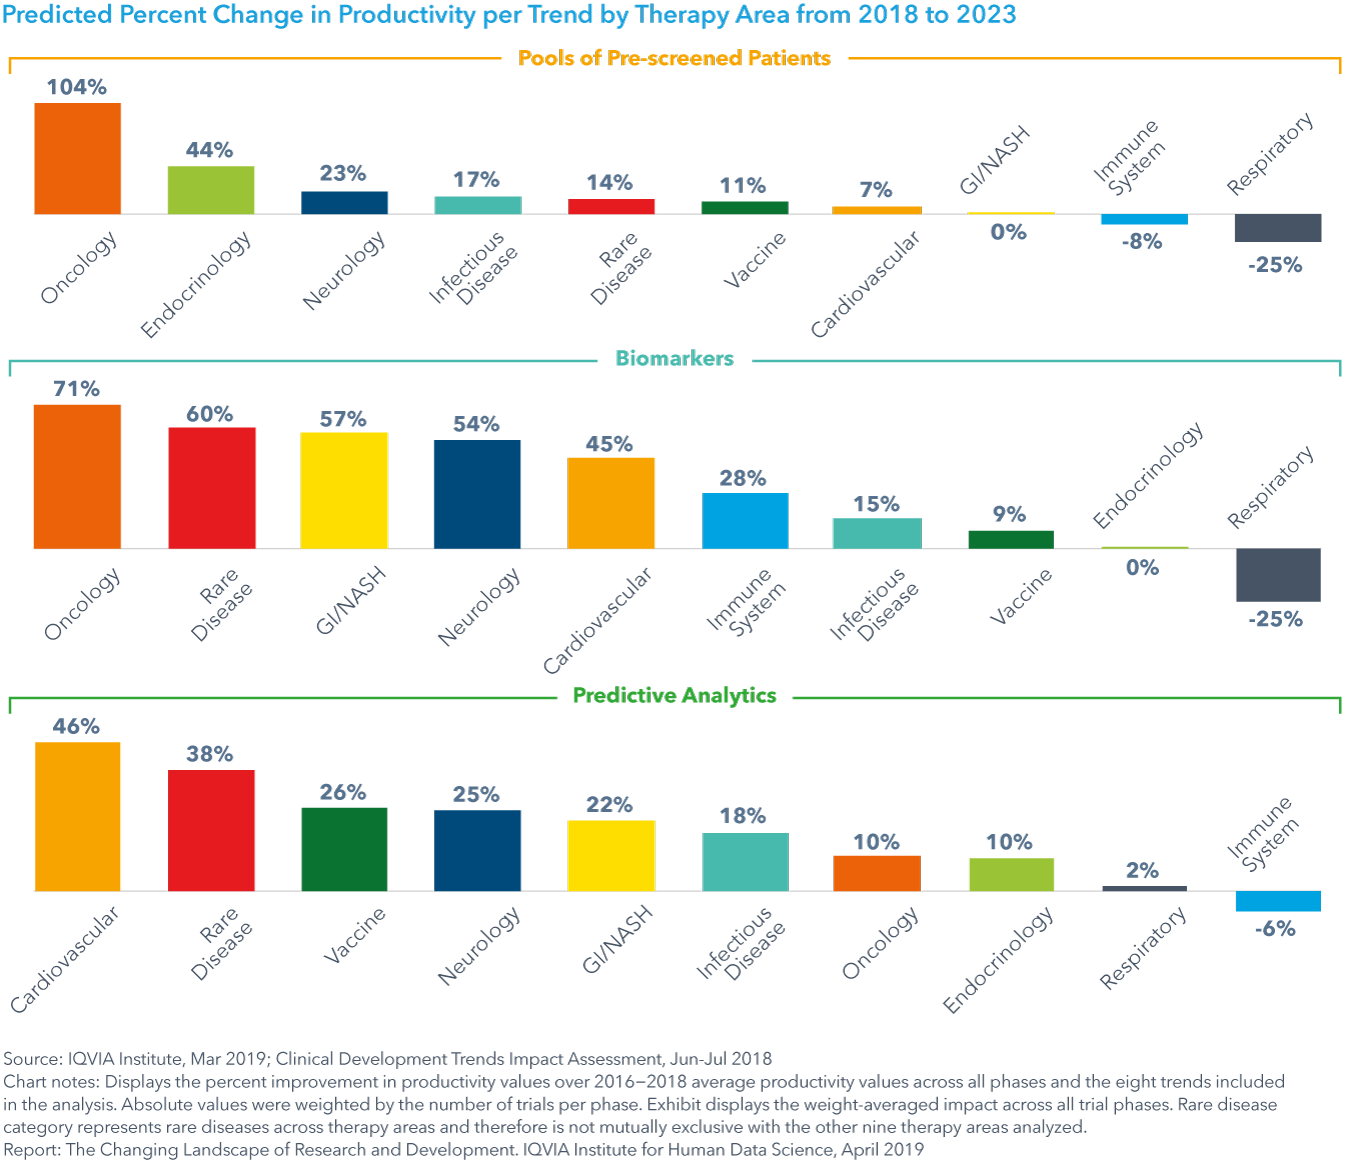 Chart 32: Predicted Percent Change in Productivity per Trend by Therapy Area from 2018 to 2023